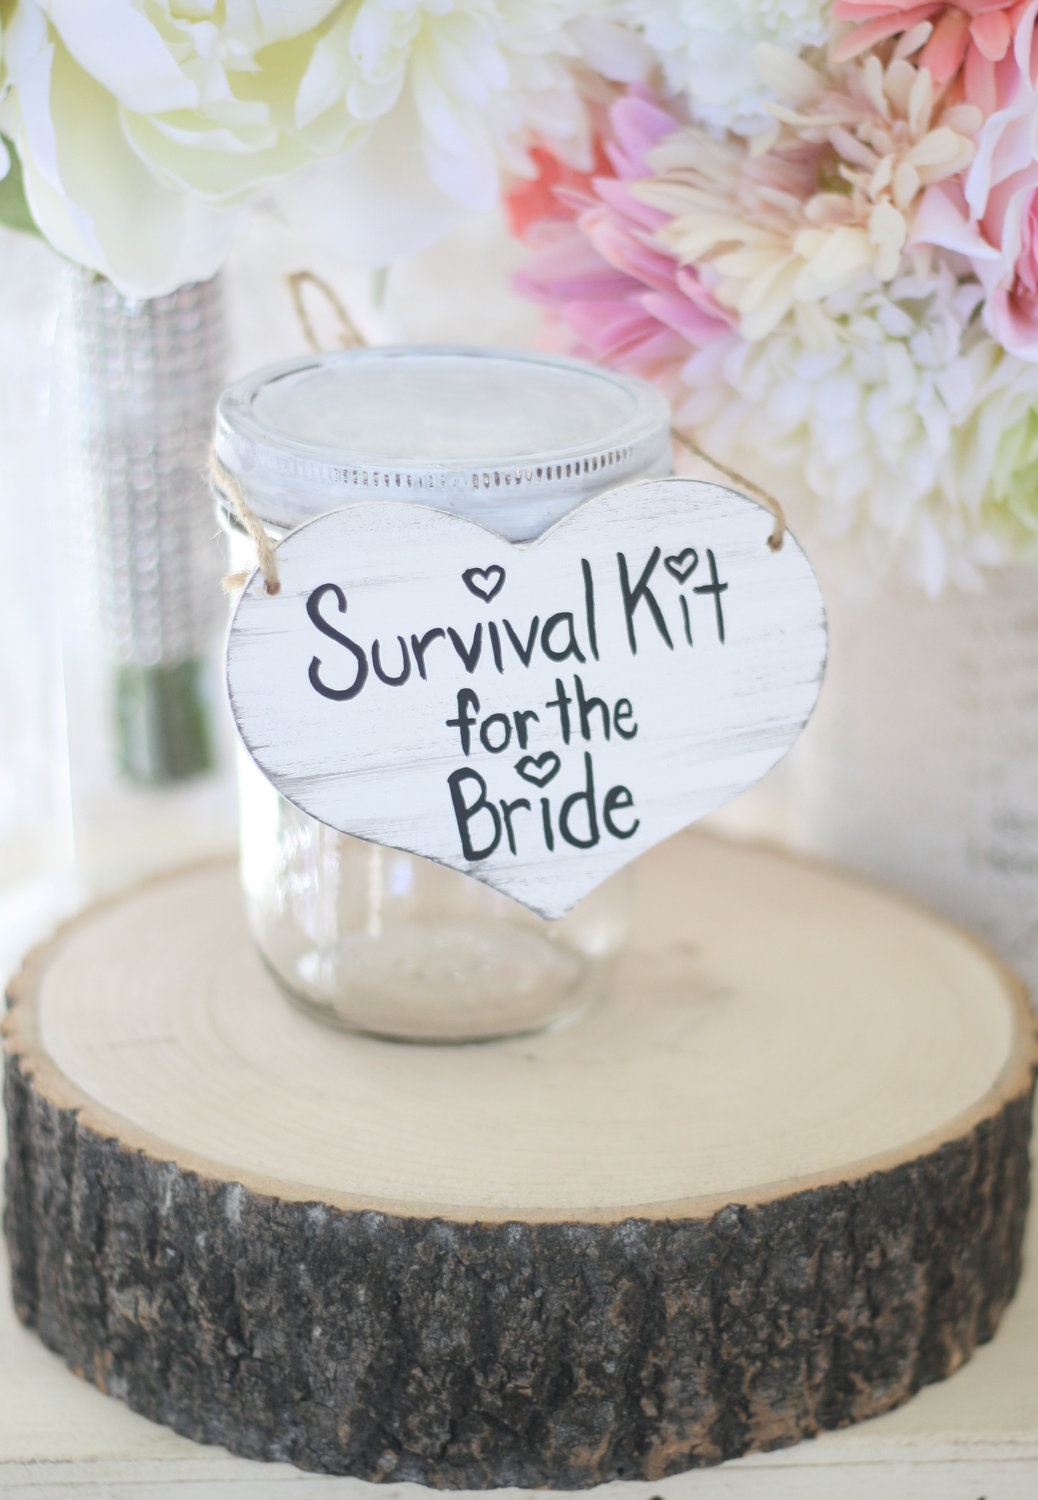 Unique Bridal Shower Gifts Diy : rustic-wedding-ideas-28-01262014